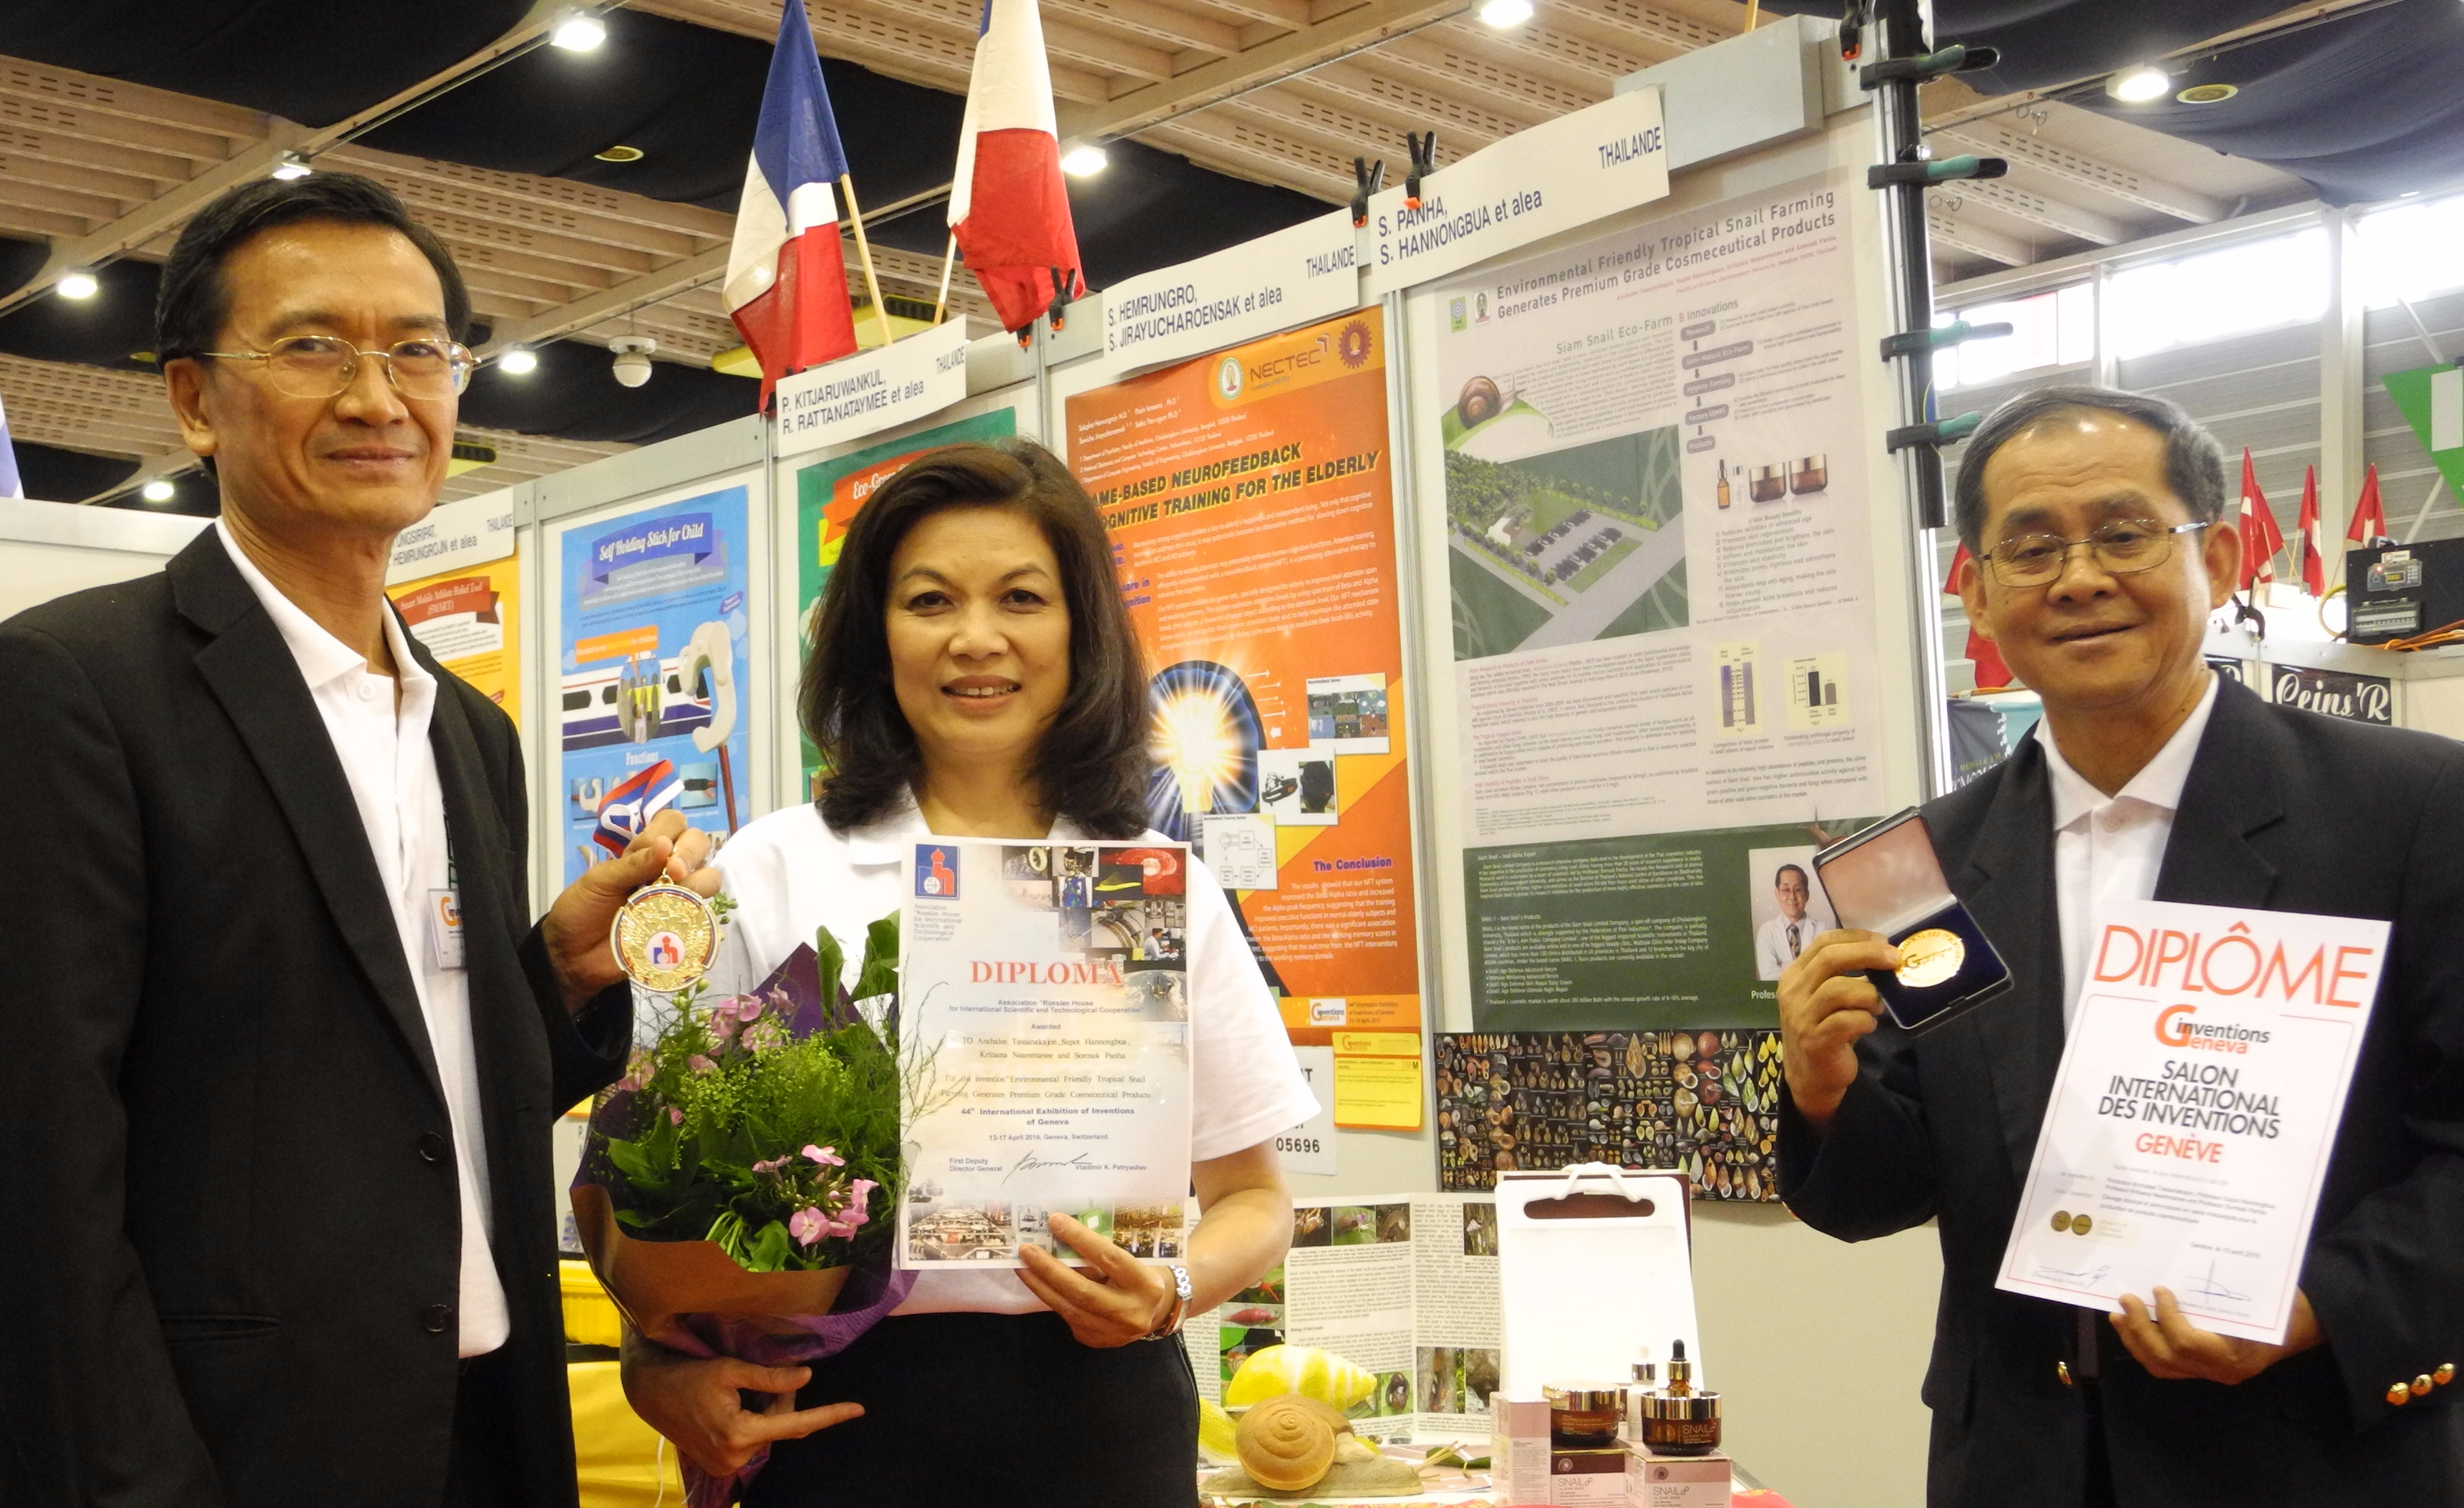 Siamsnail got Golden Medal from the 44th International Exhibition of Invention of Geneva, Geneva, Switzerland.